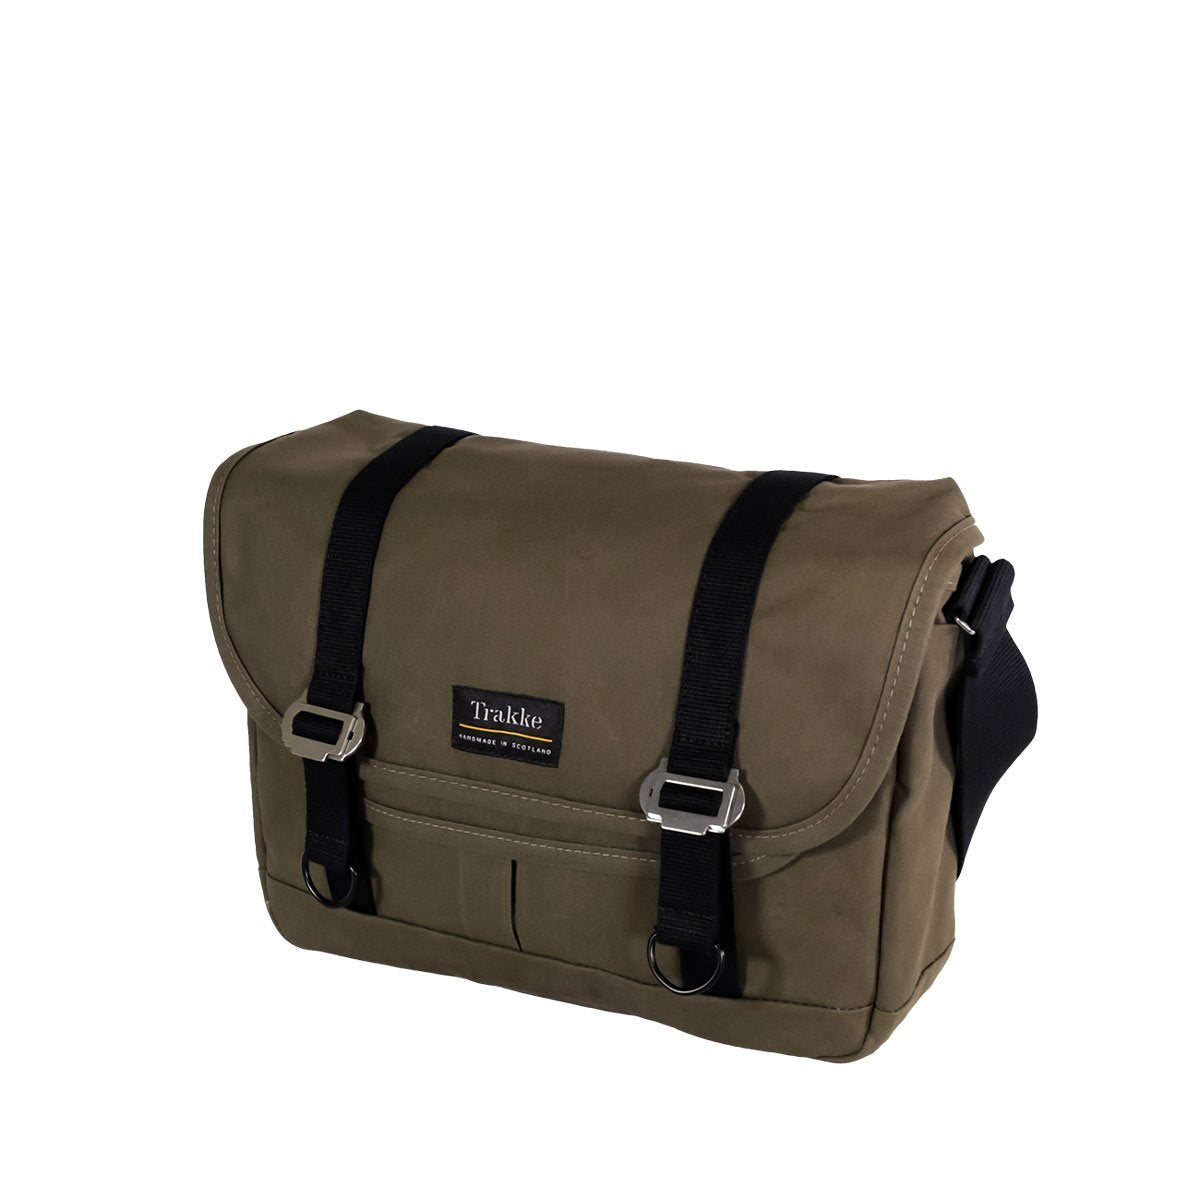 d18d08302 Trakke | NEW Bairn Messenger Bag | Waxed Canvas Laptop Messenger Bag -  WildBounds